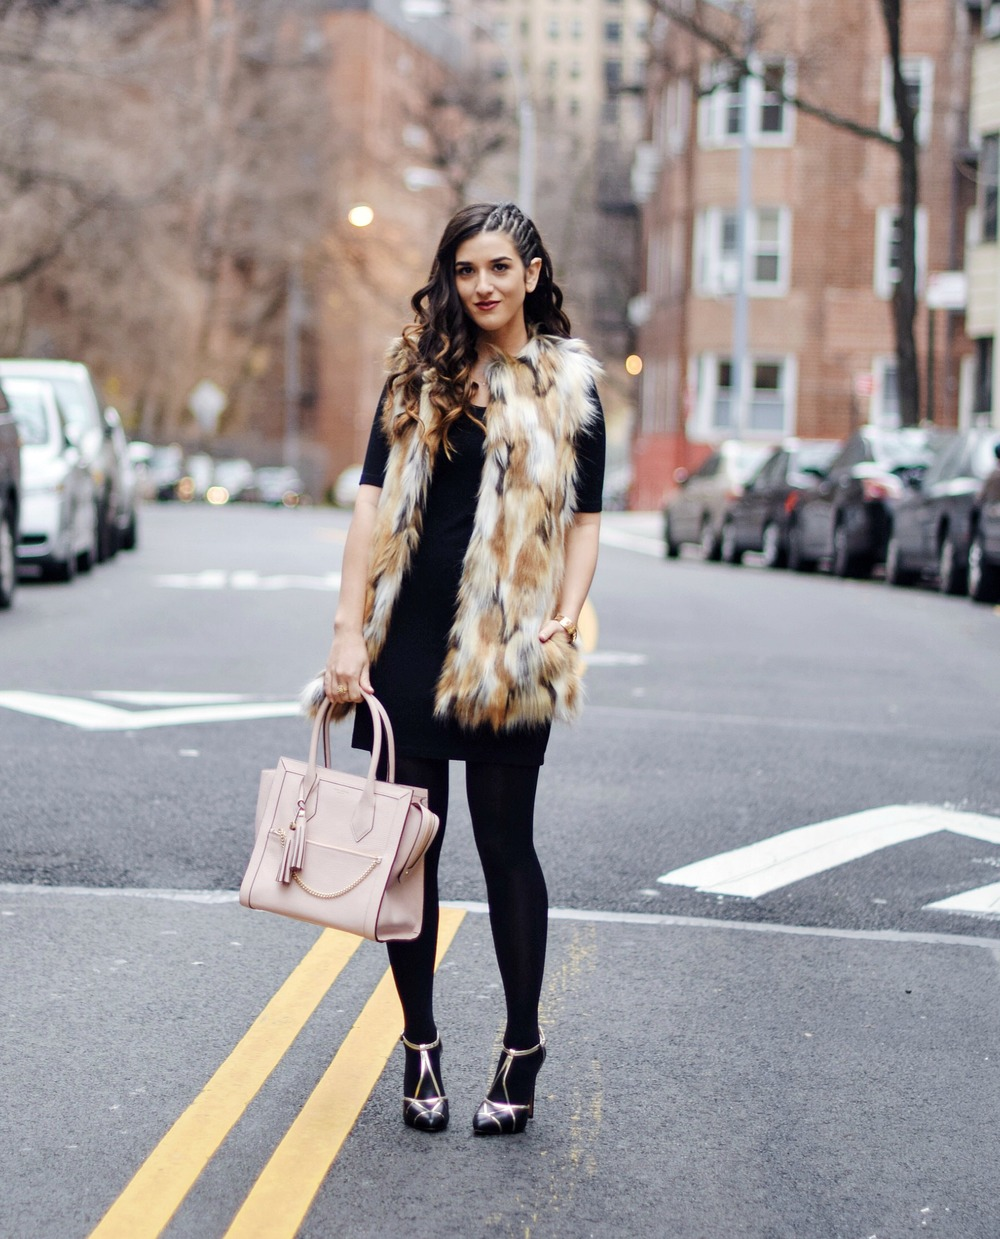 Calico Fur Henri Bendel Structured Leather Bag Louboutins & Love Fashion Blog Esther Santer NYC Street Style Blogger Zara Gold Jewelry Bracelet Pink Purse Vest Hair Inspo Outfit OOTD Cornrows Black Dress LBD Heels Shoes Women Girl Fall Winter Shopping.jpg